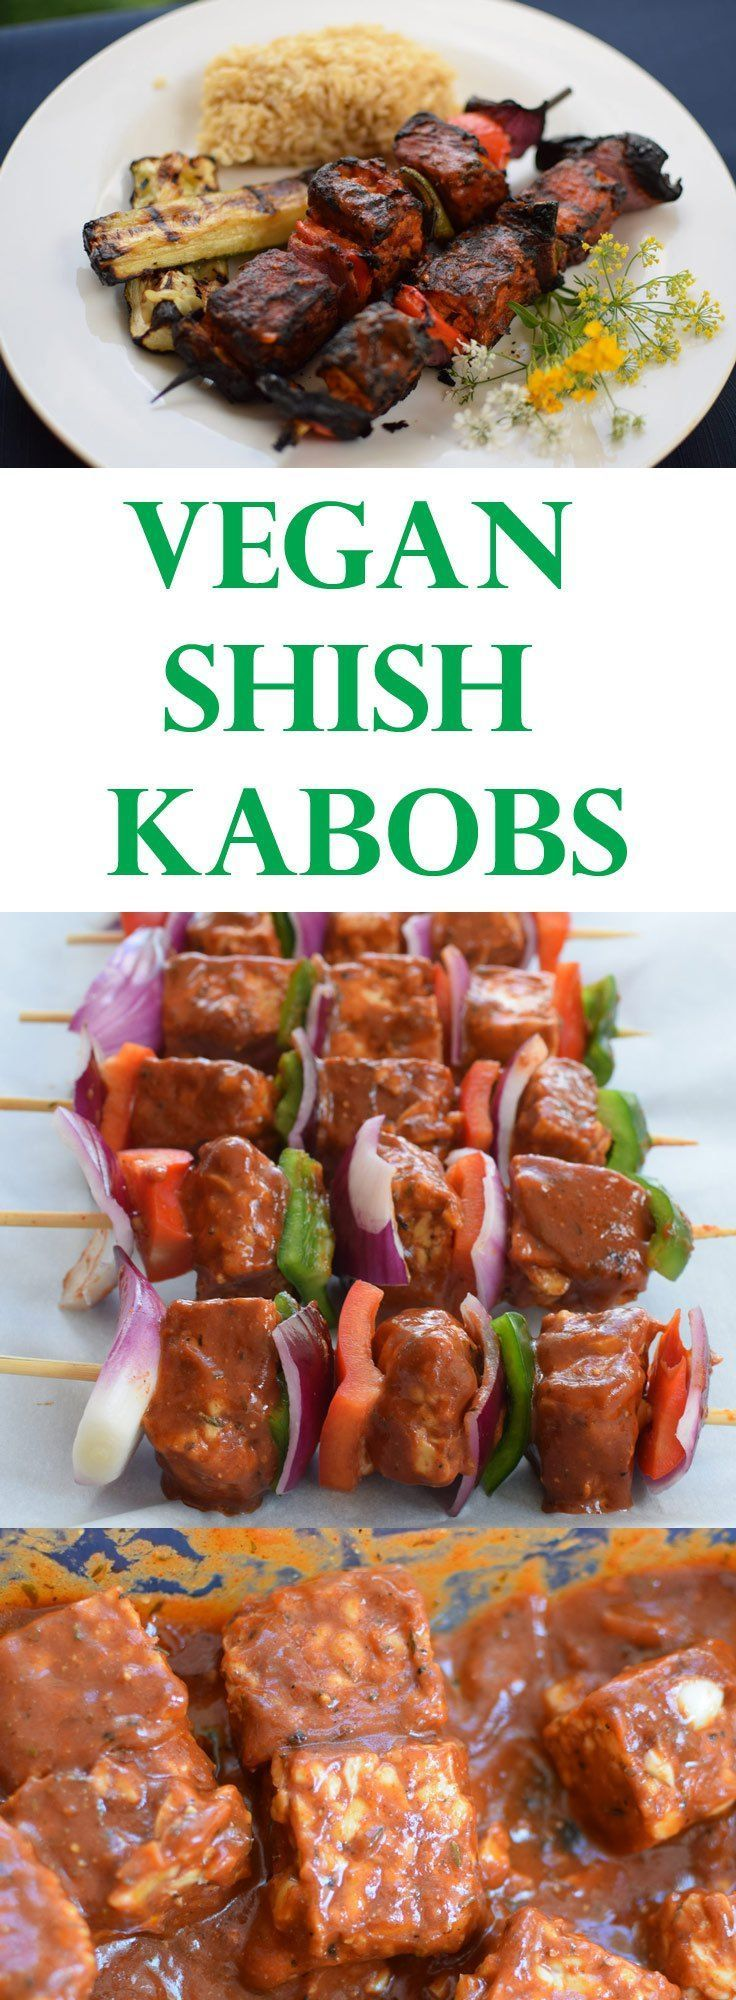 Vegan Shish Kabobs - Perfect for your Labor Day Party